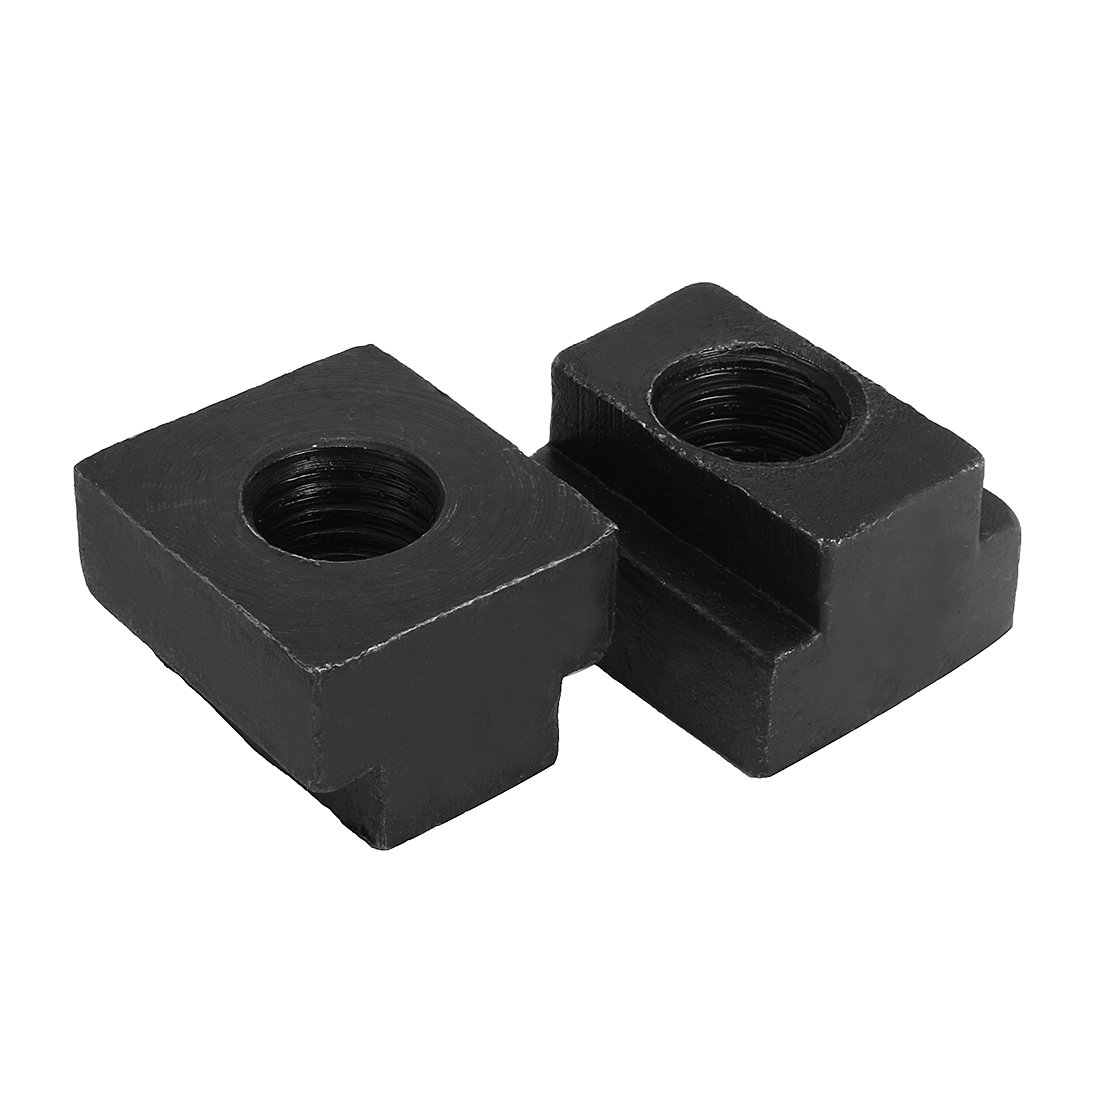 Aexit M18 Steel Nuts T-Slot Nut Black Oxide Plated Grade 8.8 Tapped T-Slot Nuts Through 2pcs by Aexit